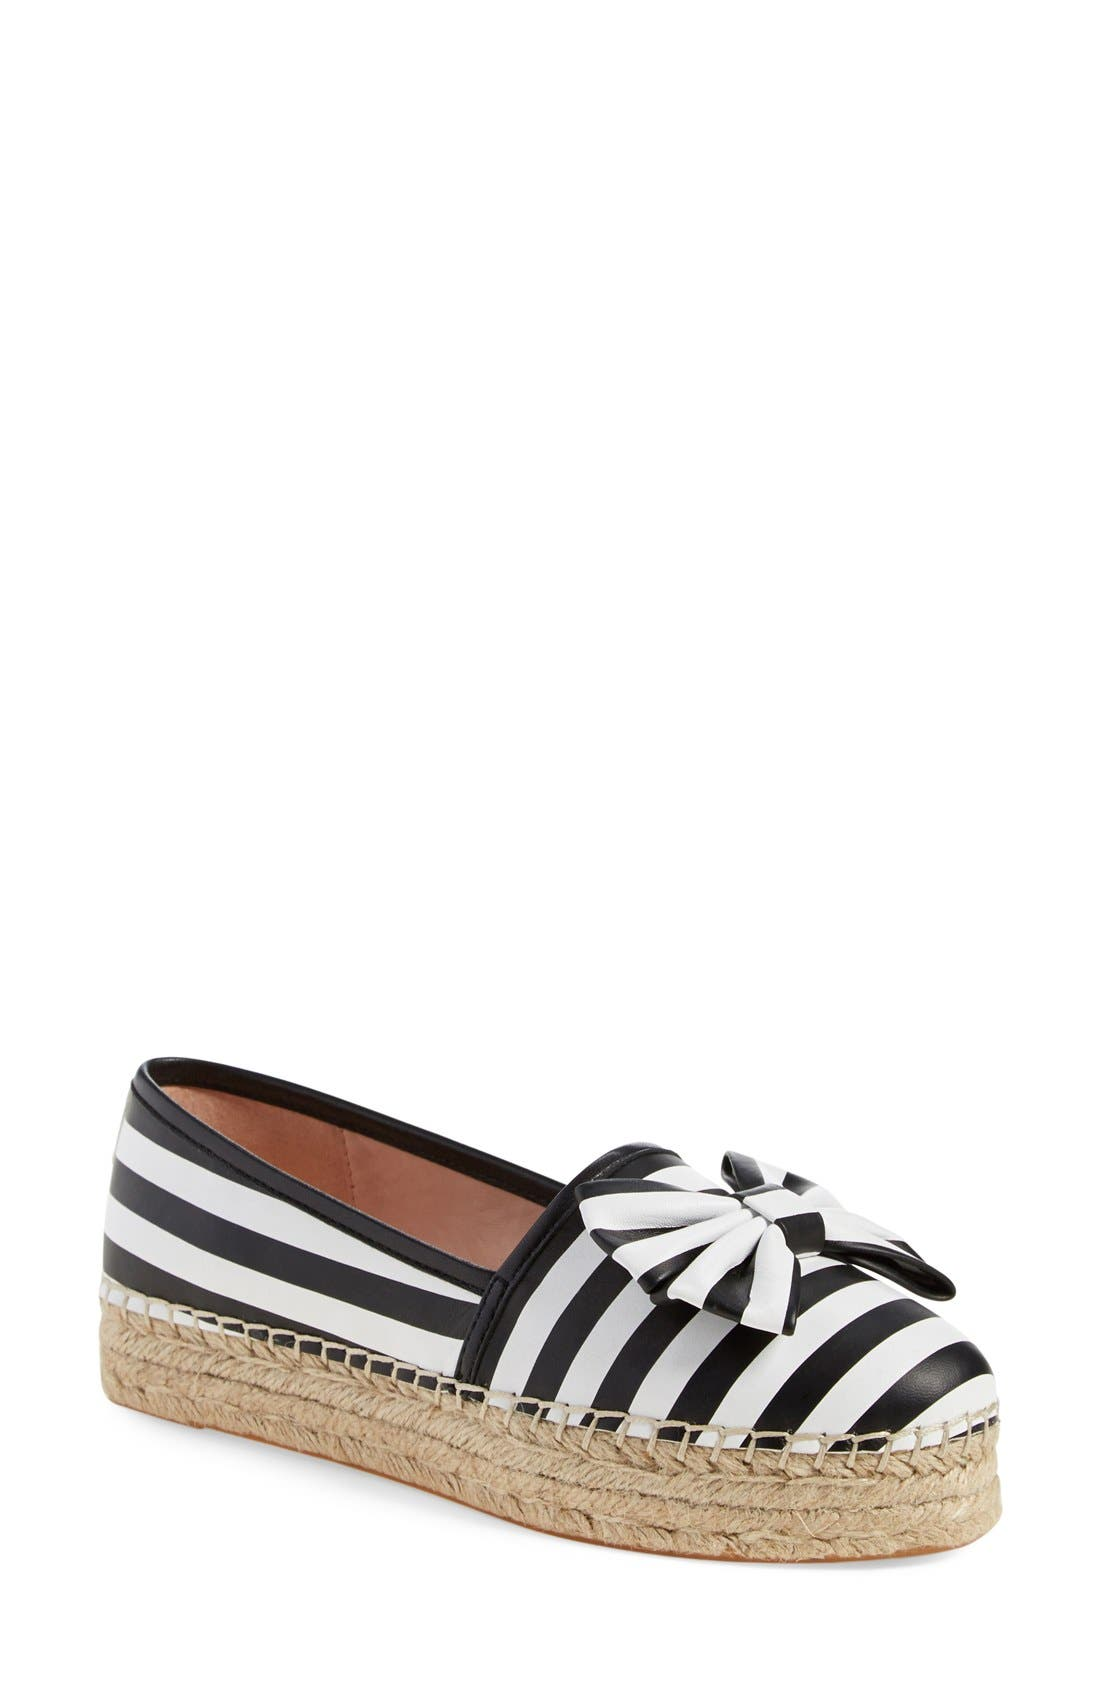 Main Image - kate spade new york 'linds' bow espadrille (Women)